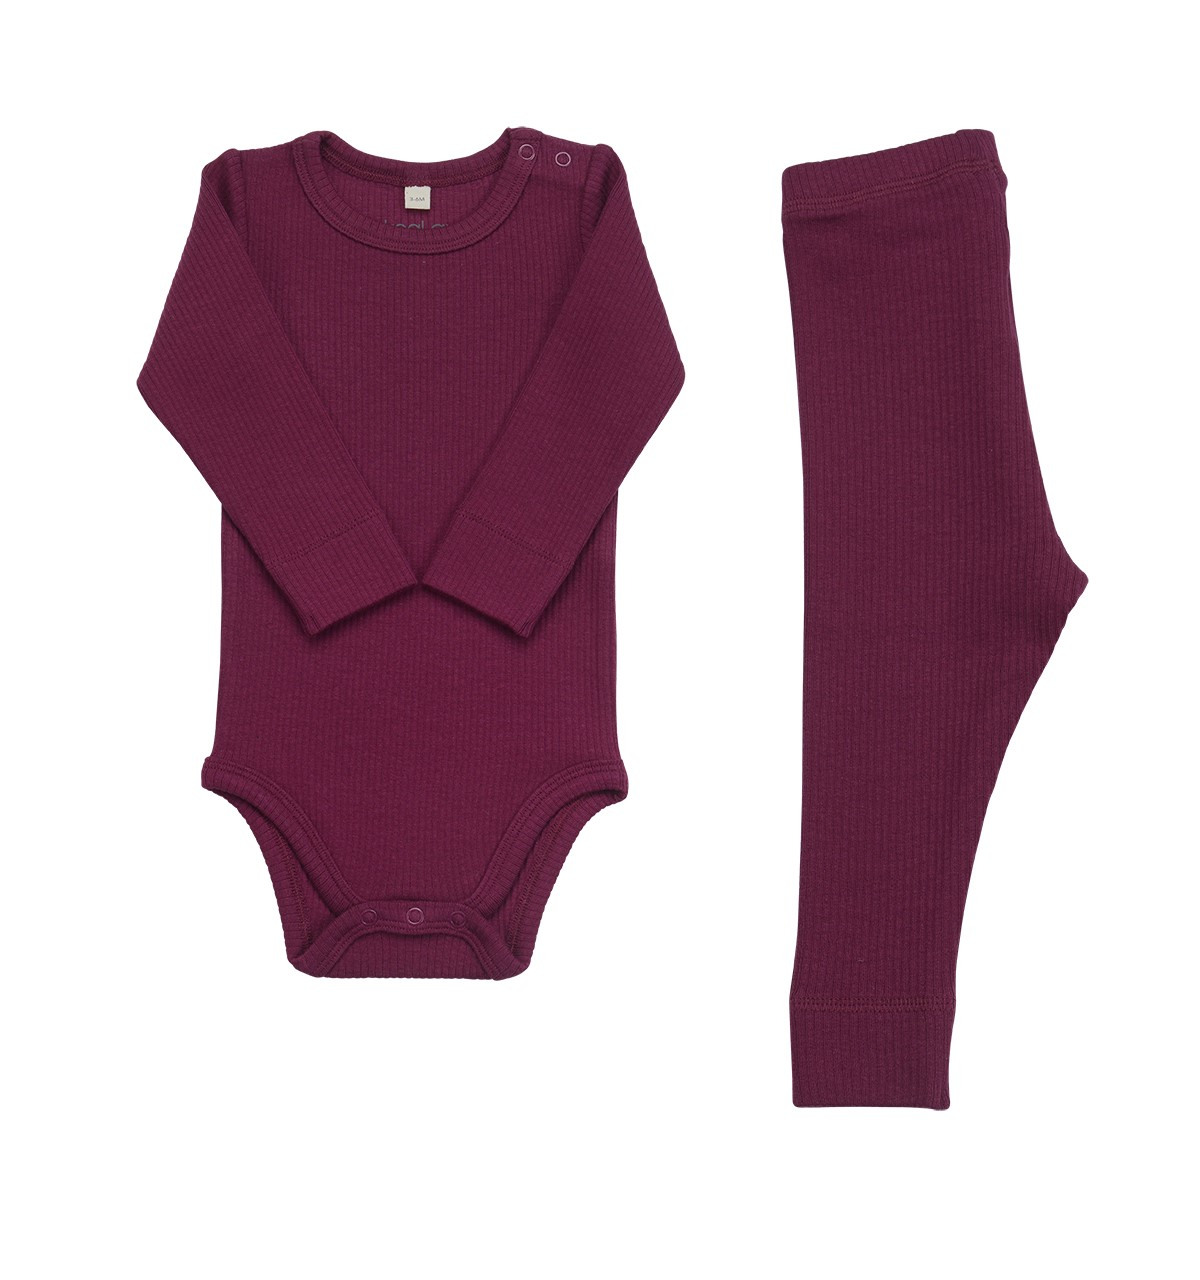 kendinden-fitilli-body-pantolon-set-plum